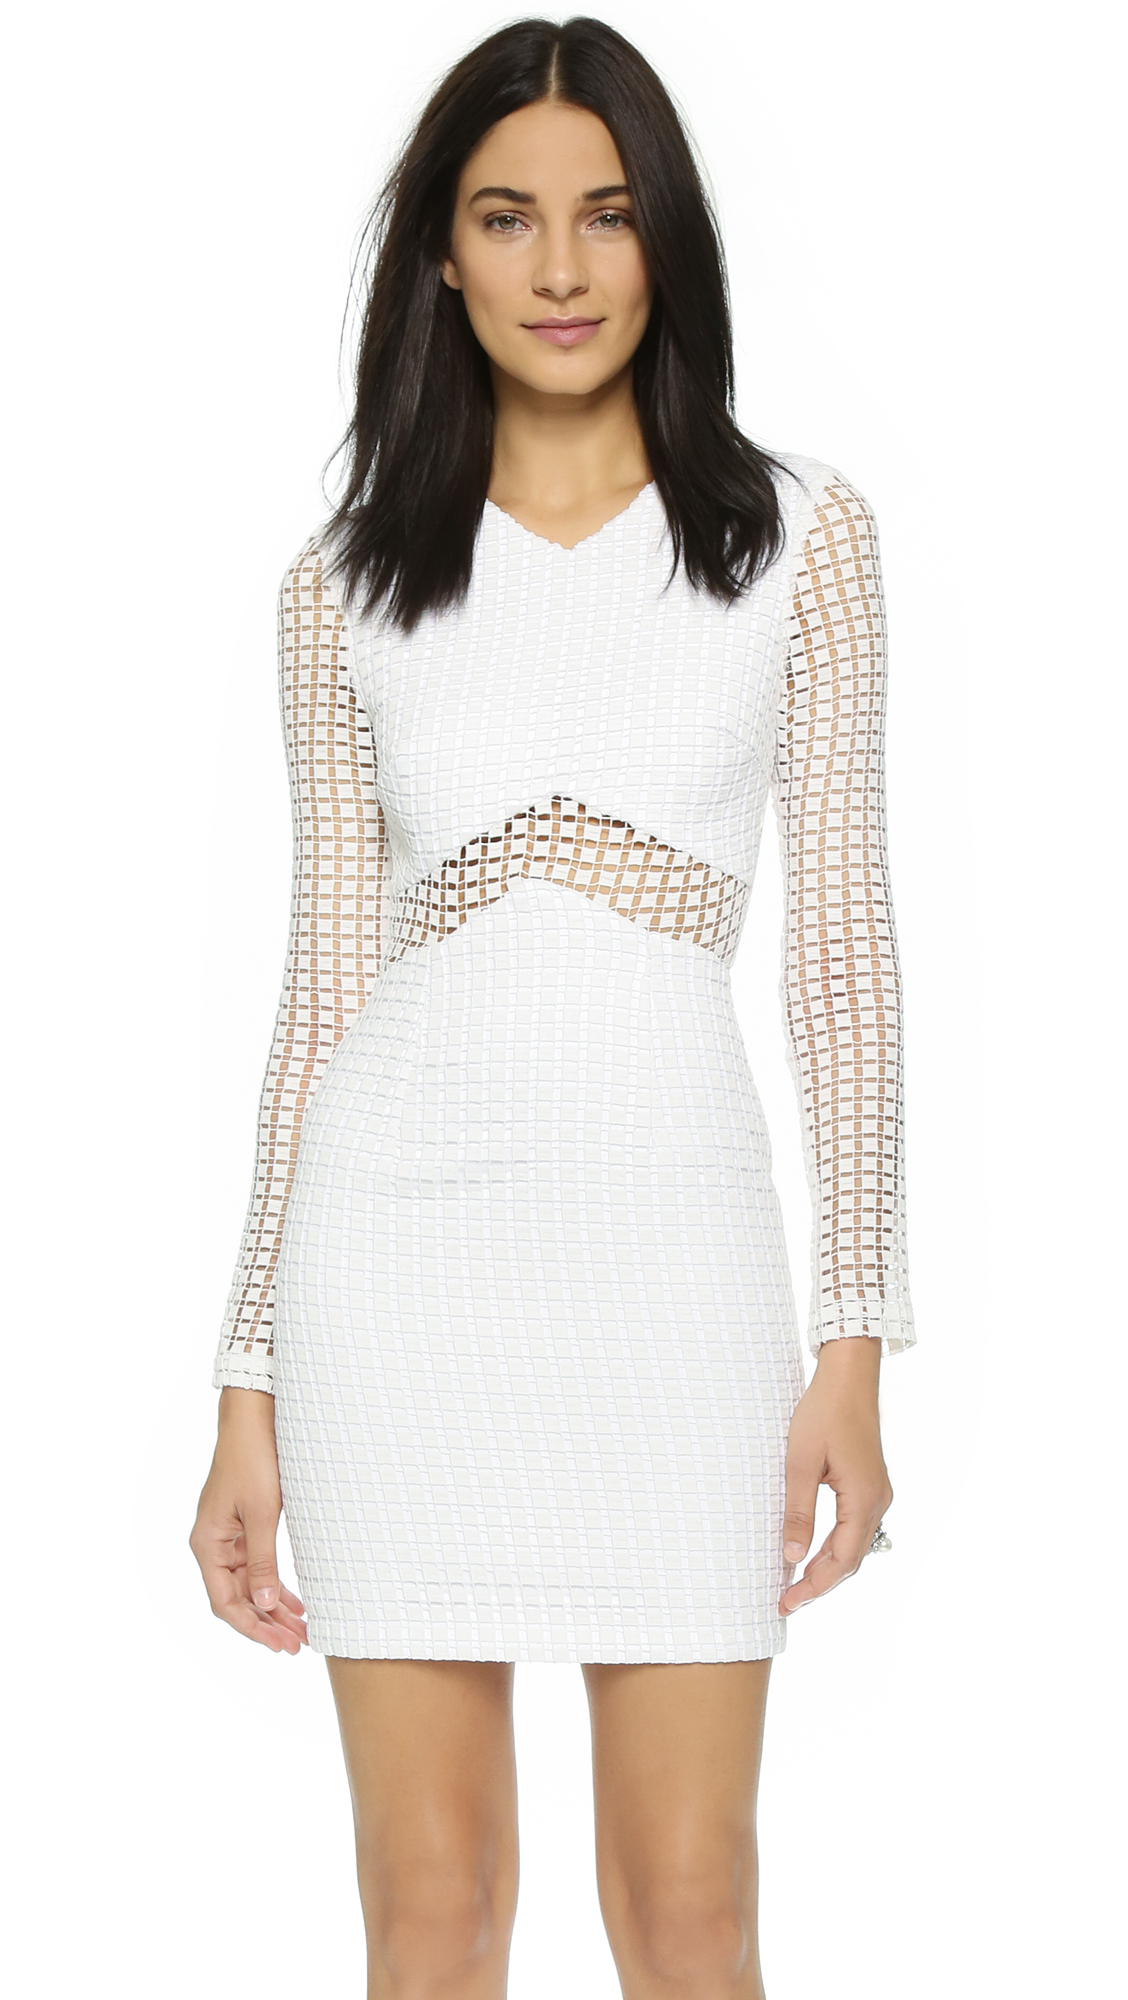 Lyst - Nicholas Square Lace Long Sleeve Dress - White in White